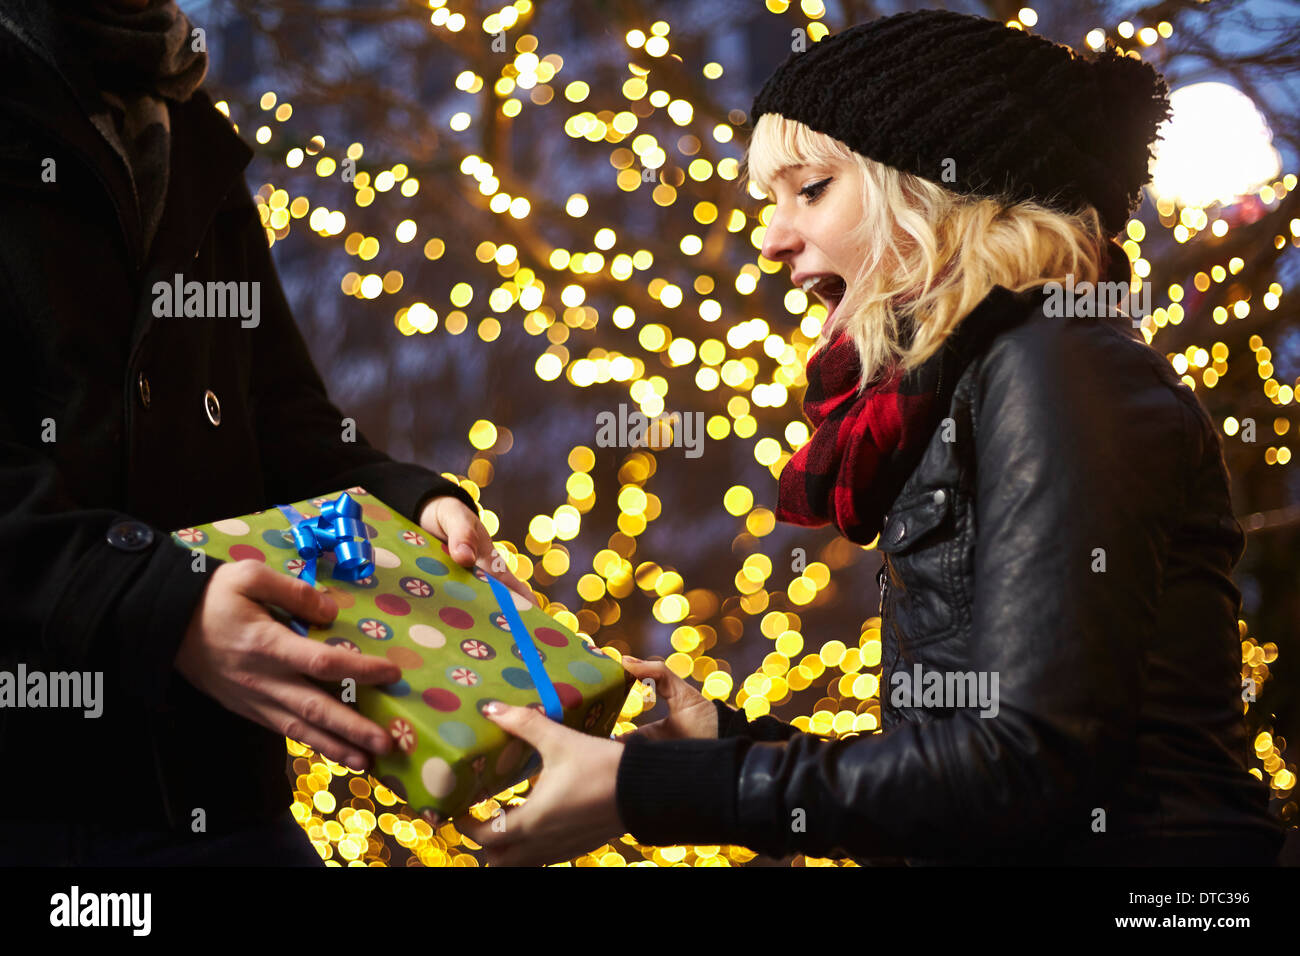 Young woman receiving xmas gift on city street - Stock Image